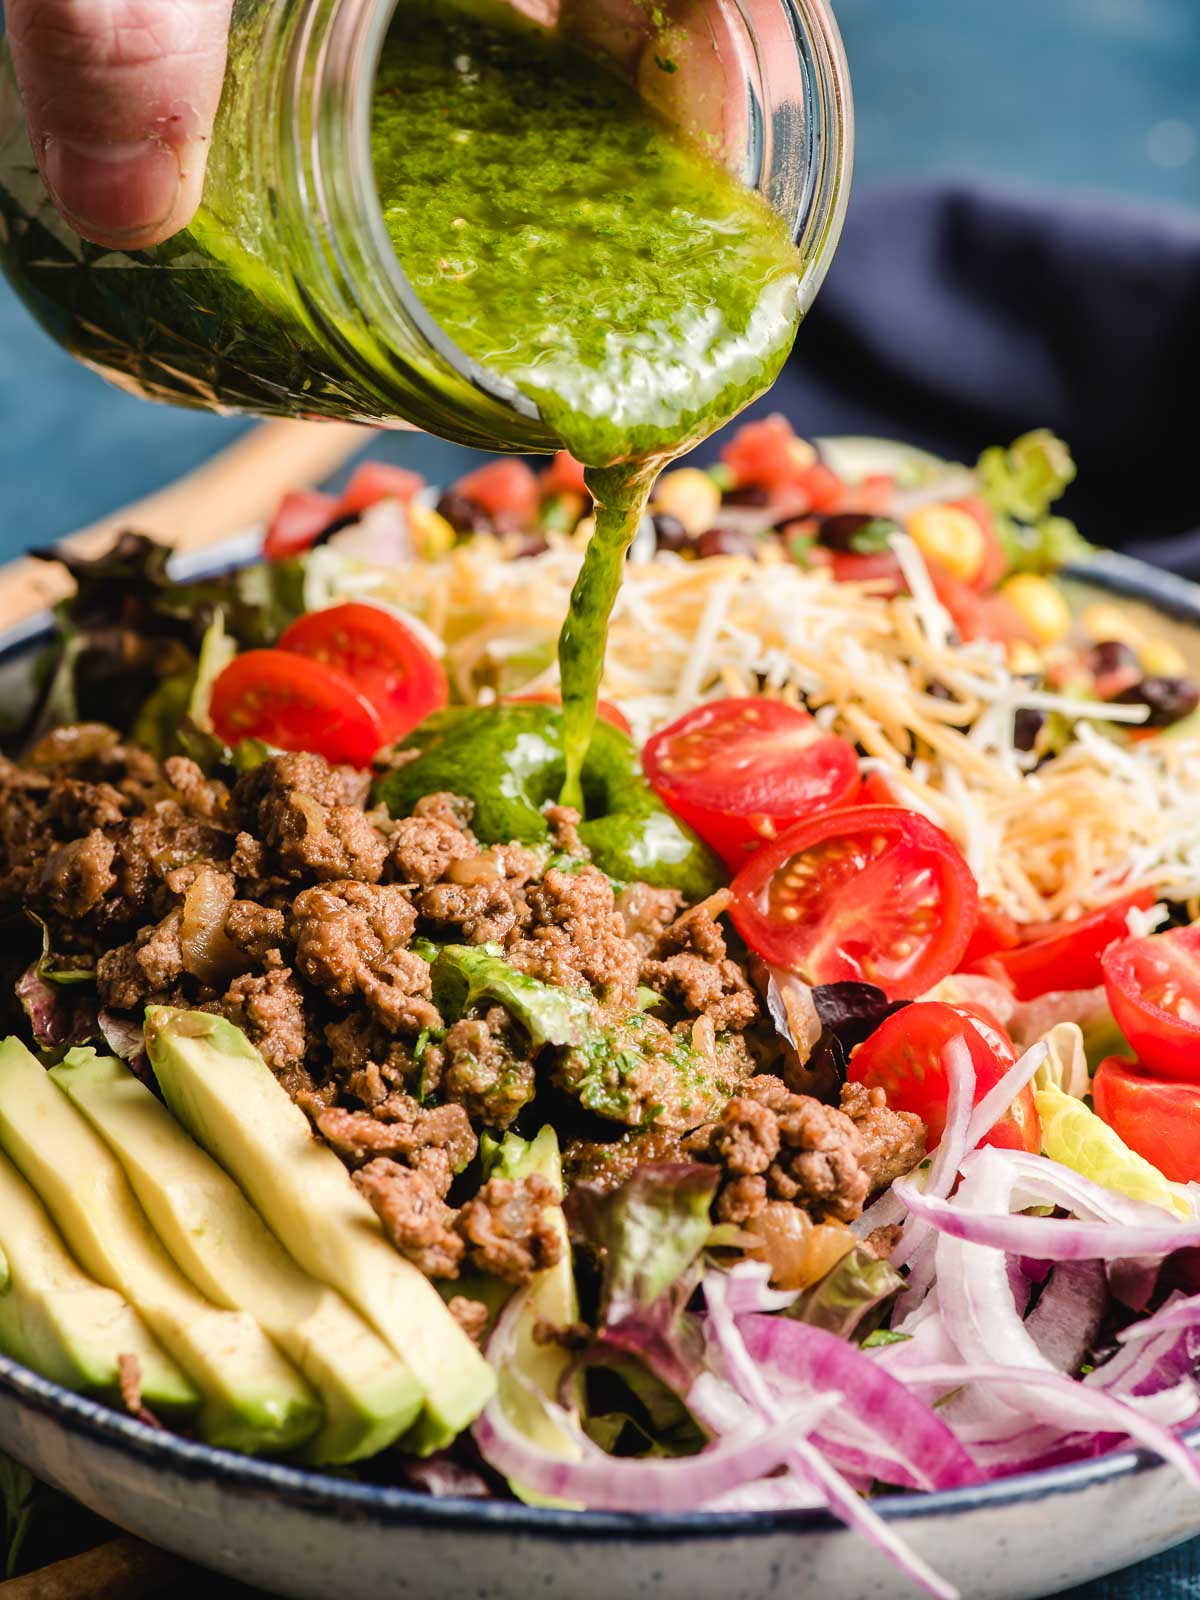 Cilantro Lime Vinaigrette dressing being poured on a bowl of Ground Beef Taco Salad.